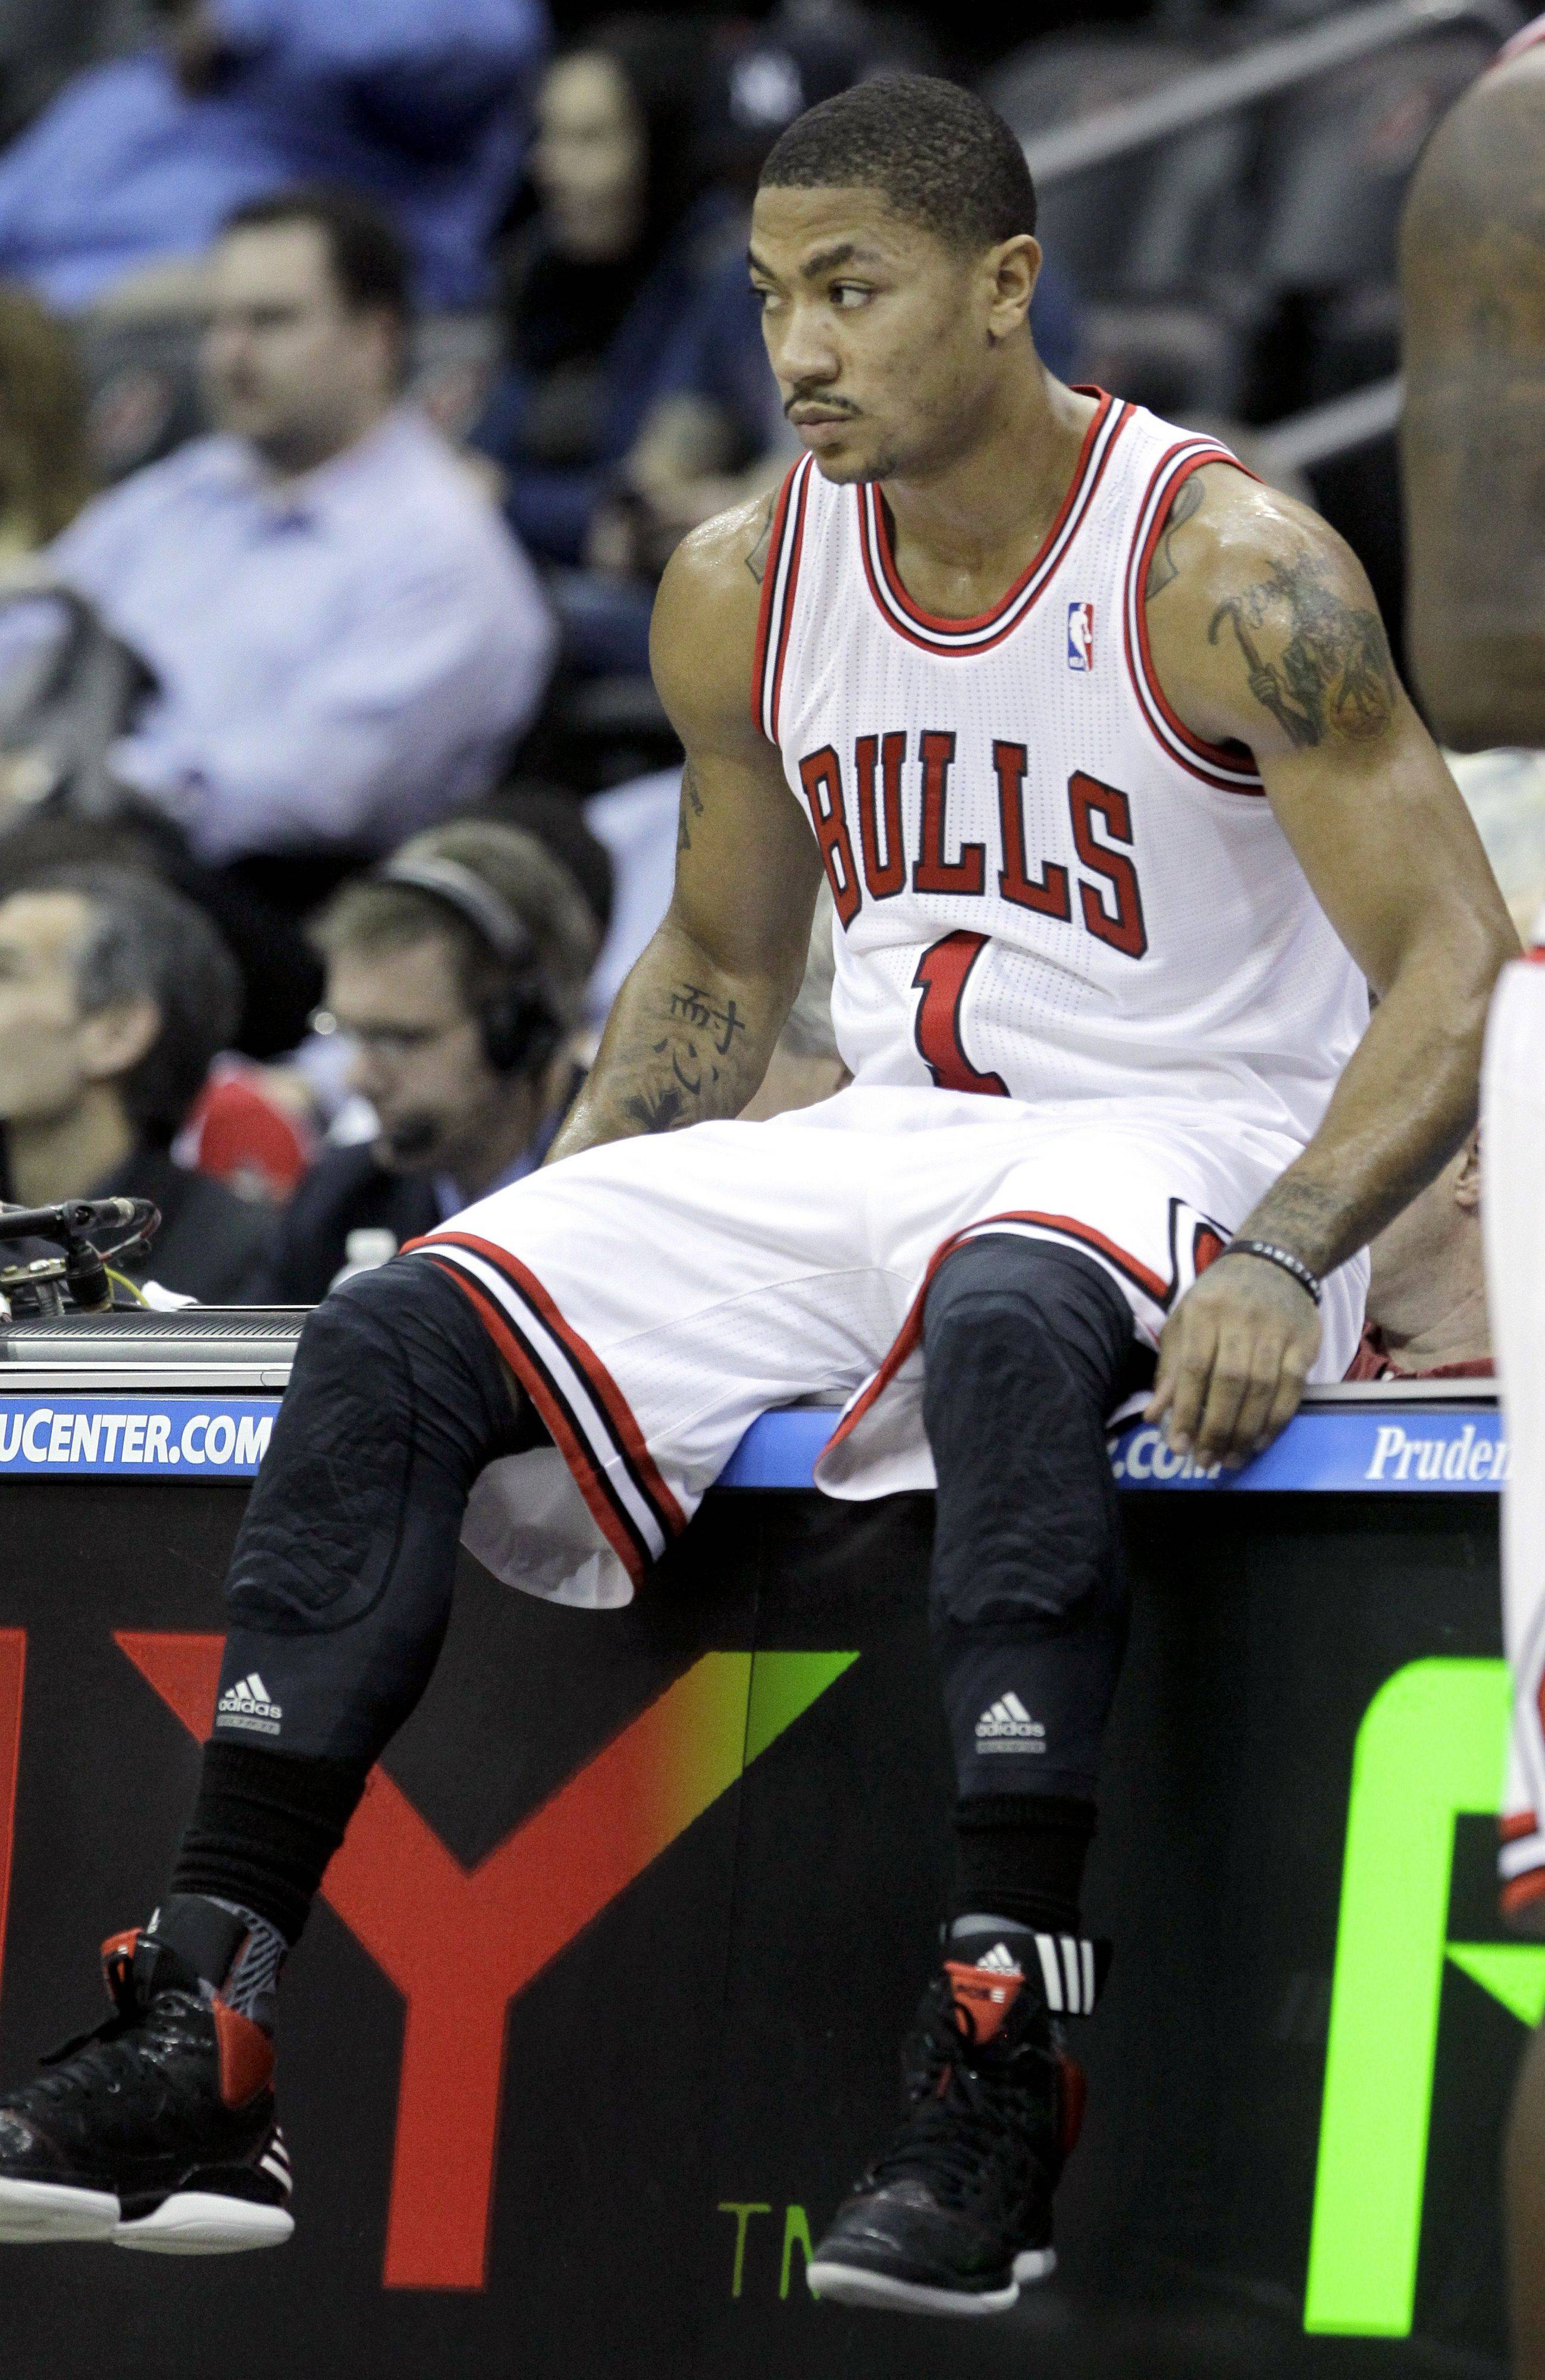 A medical exam Monday revealed that Bulls guard Derrick Rose does not have any structural damage in his back. He will continue to receive treatment for the muscular problem, and his status is day to day.